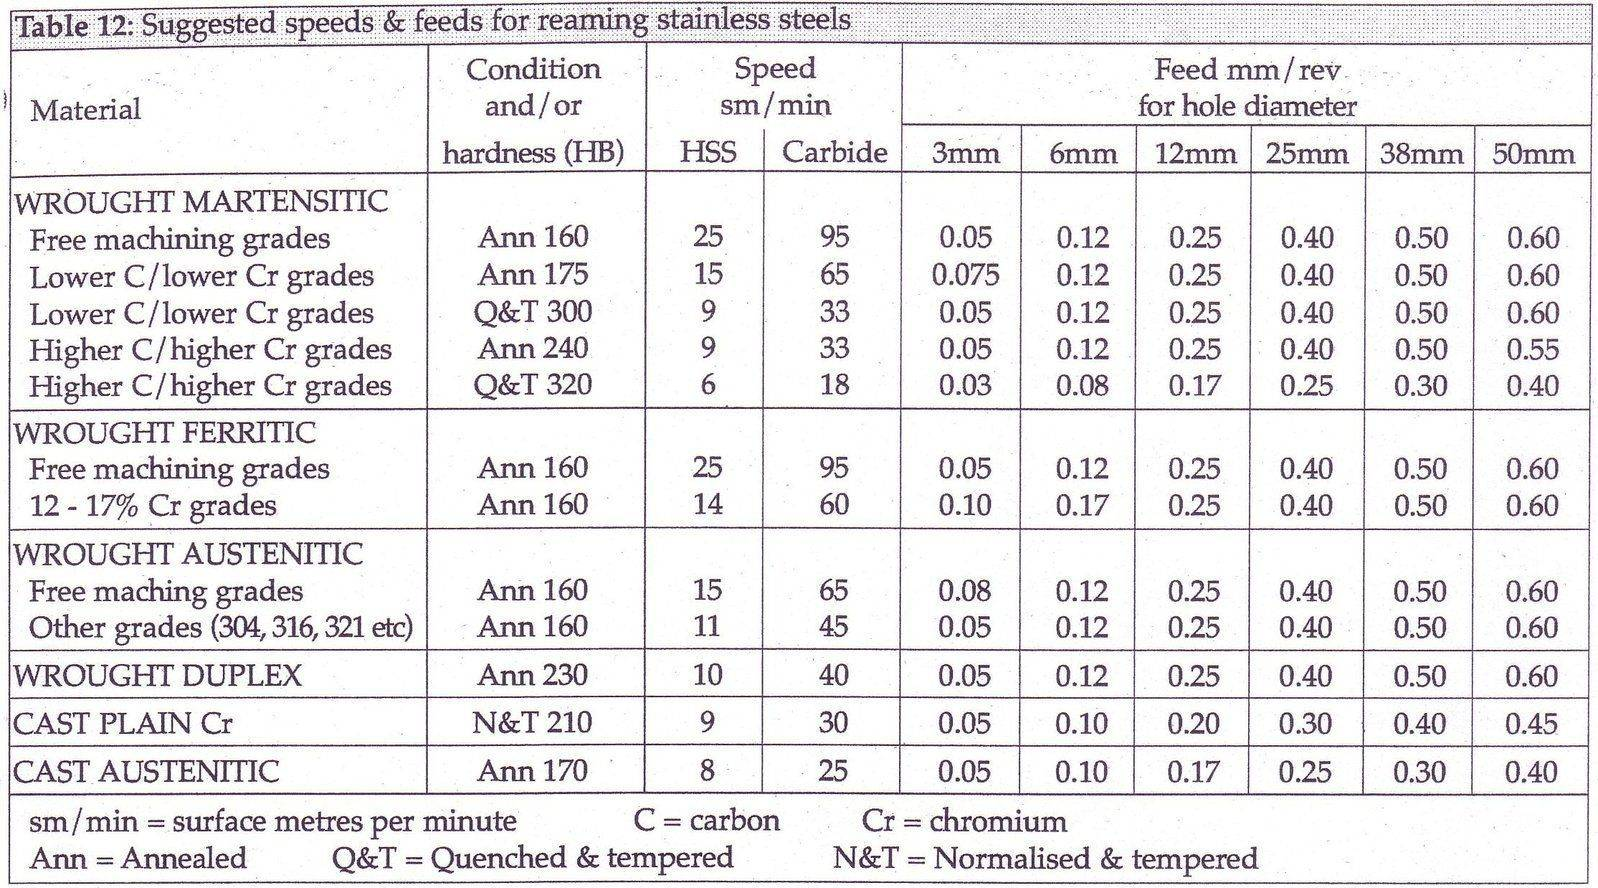 Speeds and feeds for drilling and reaming stainless steels_4.jpg